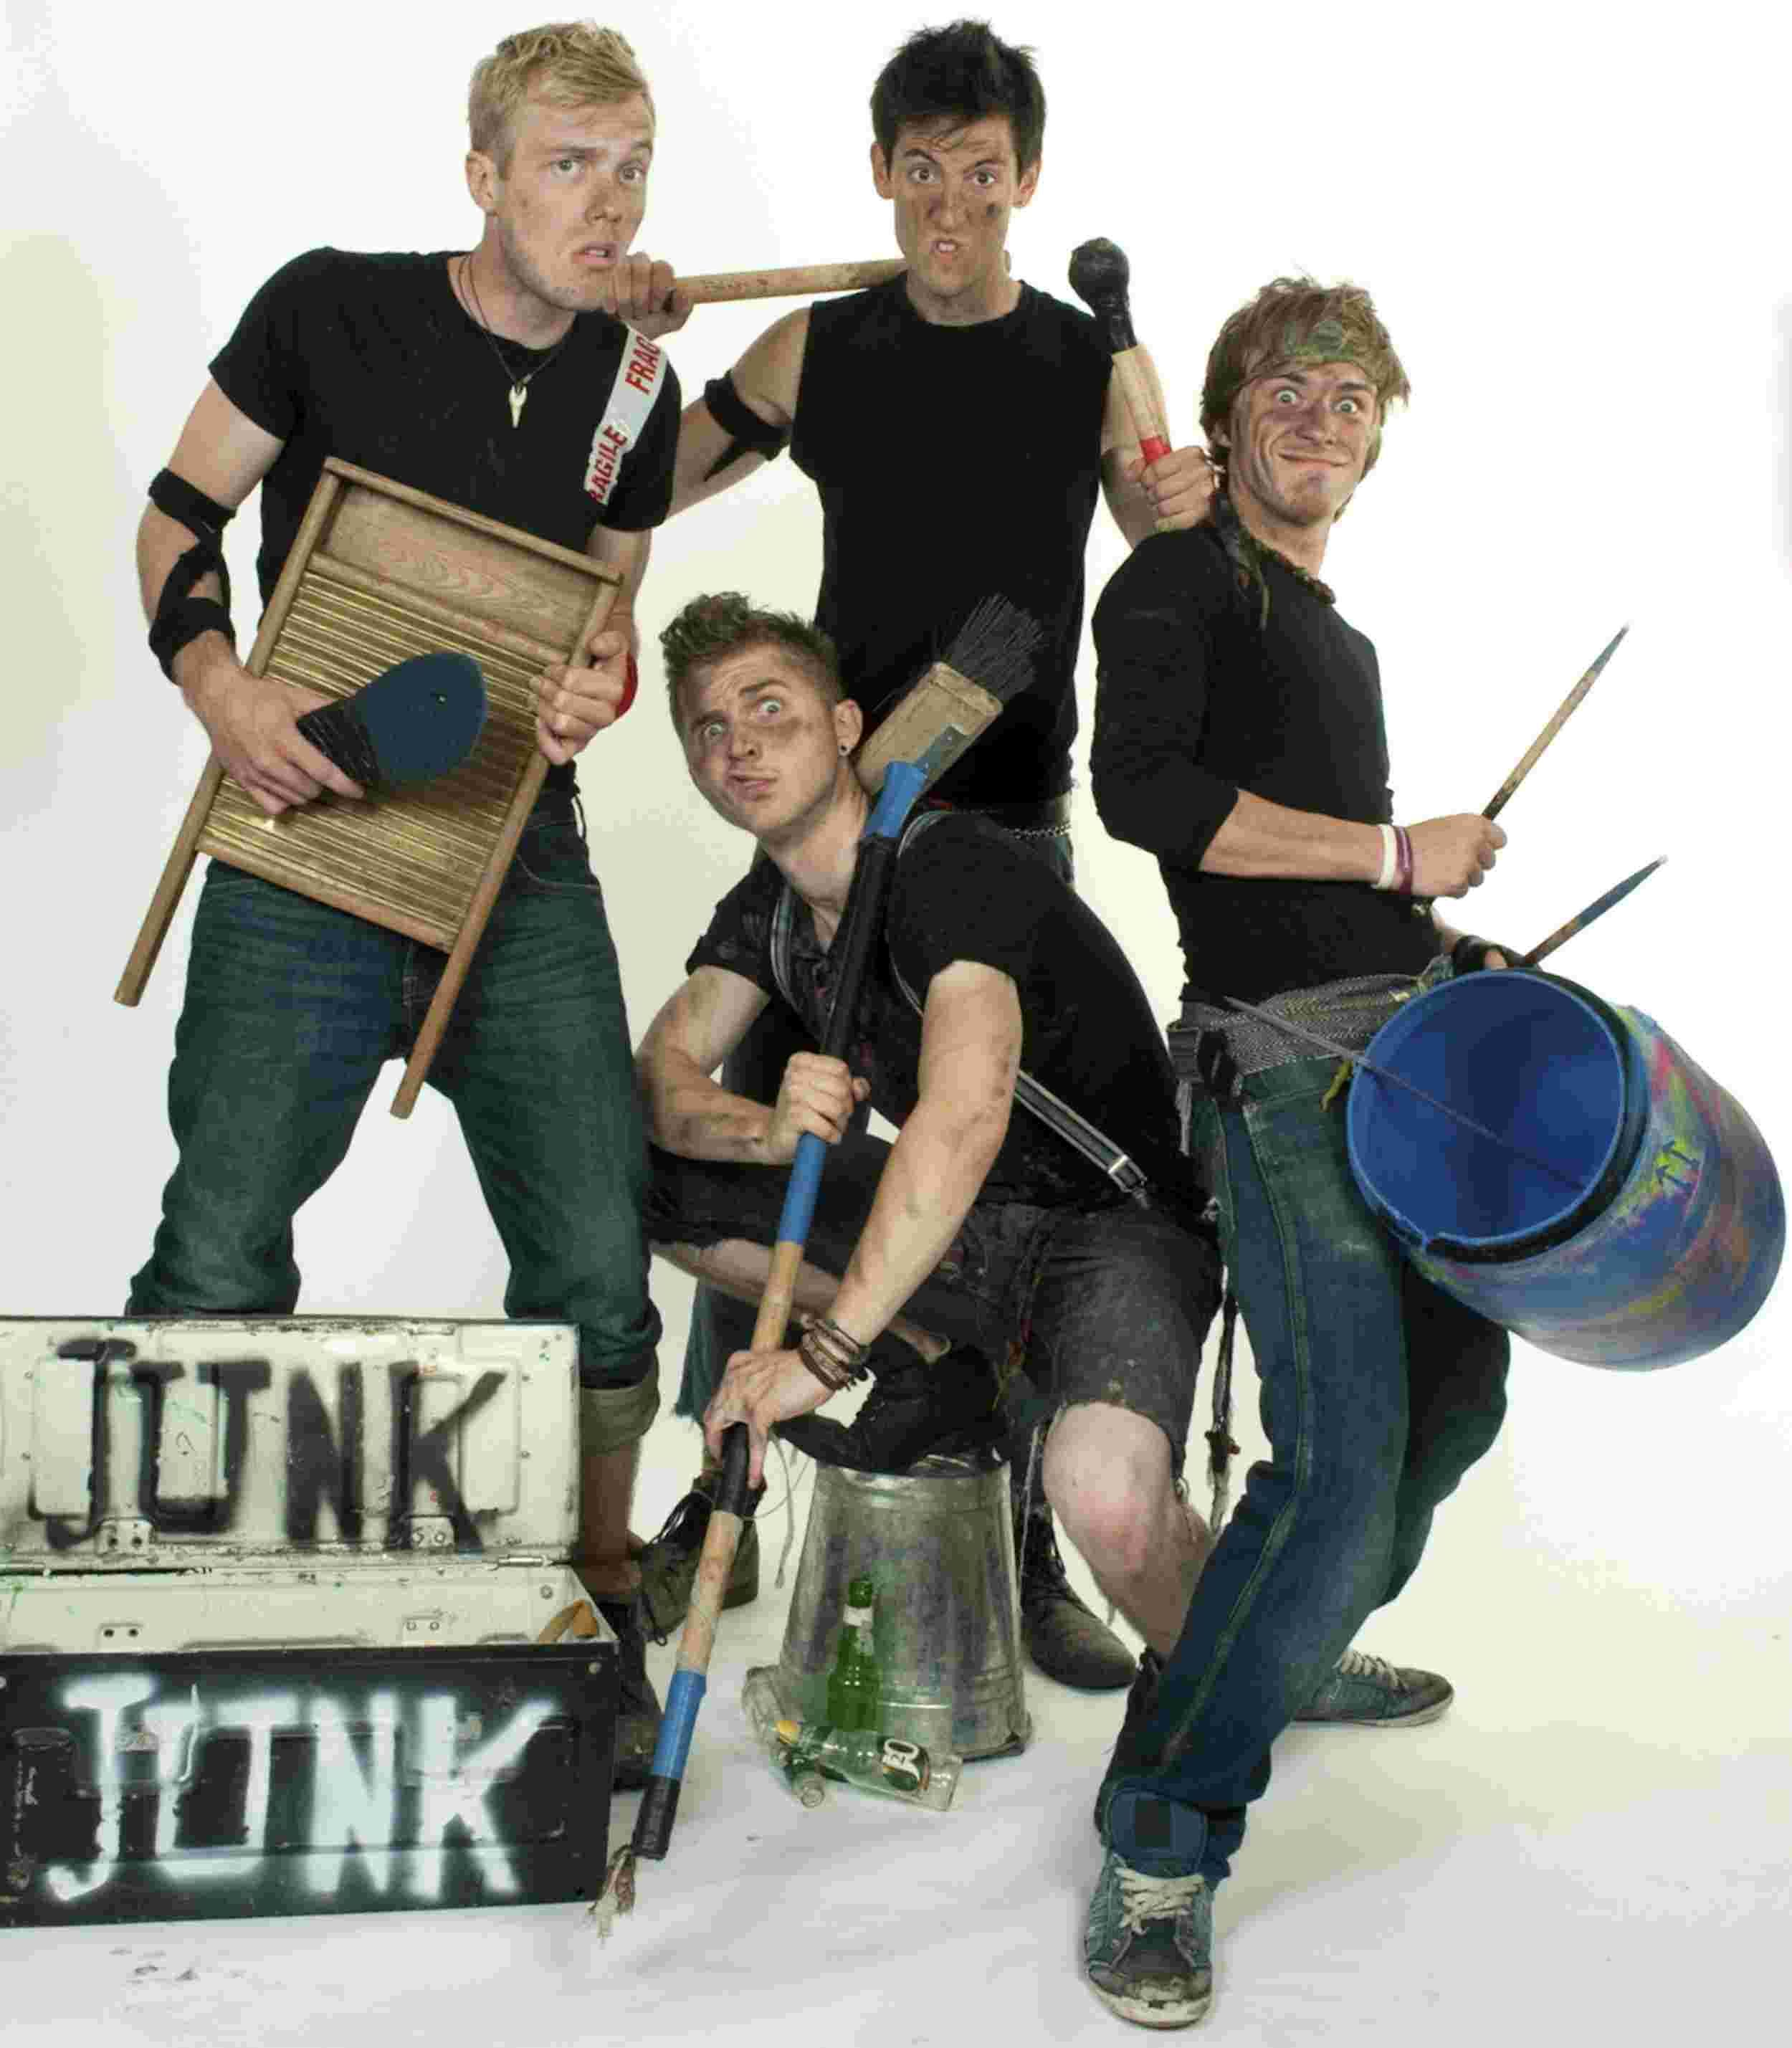 JuNK, featuring the New Forest's Jake Briggs, Russell Brooks, Sam McGowan and Jay Osborne.